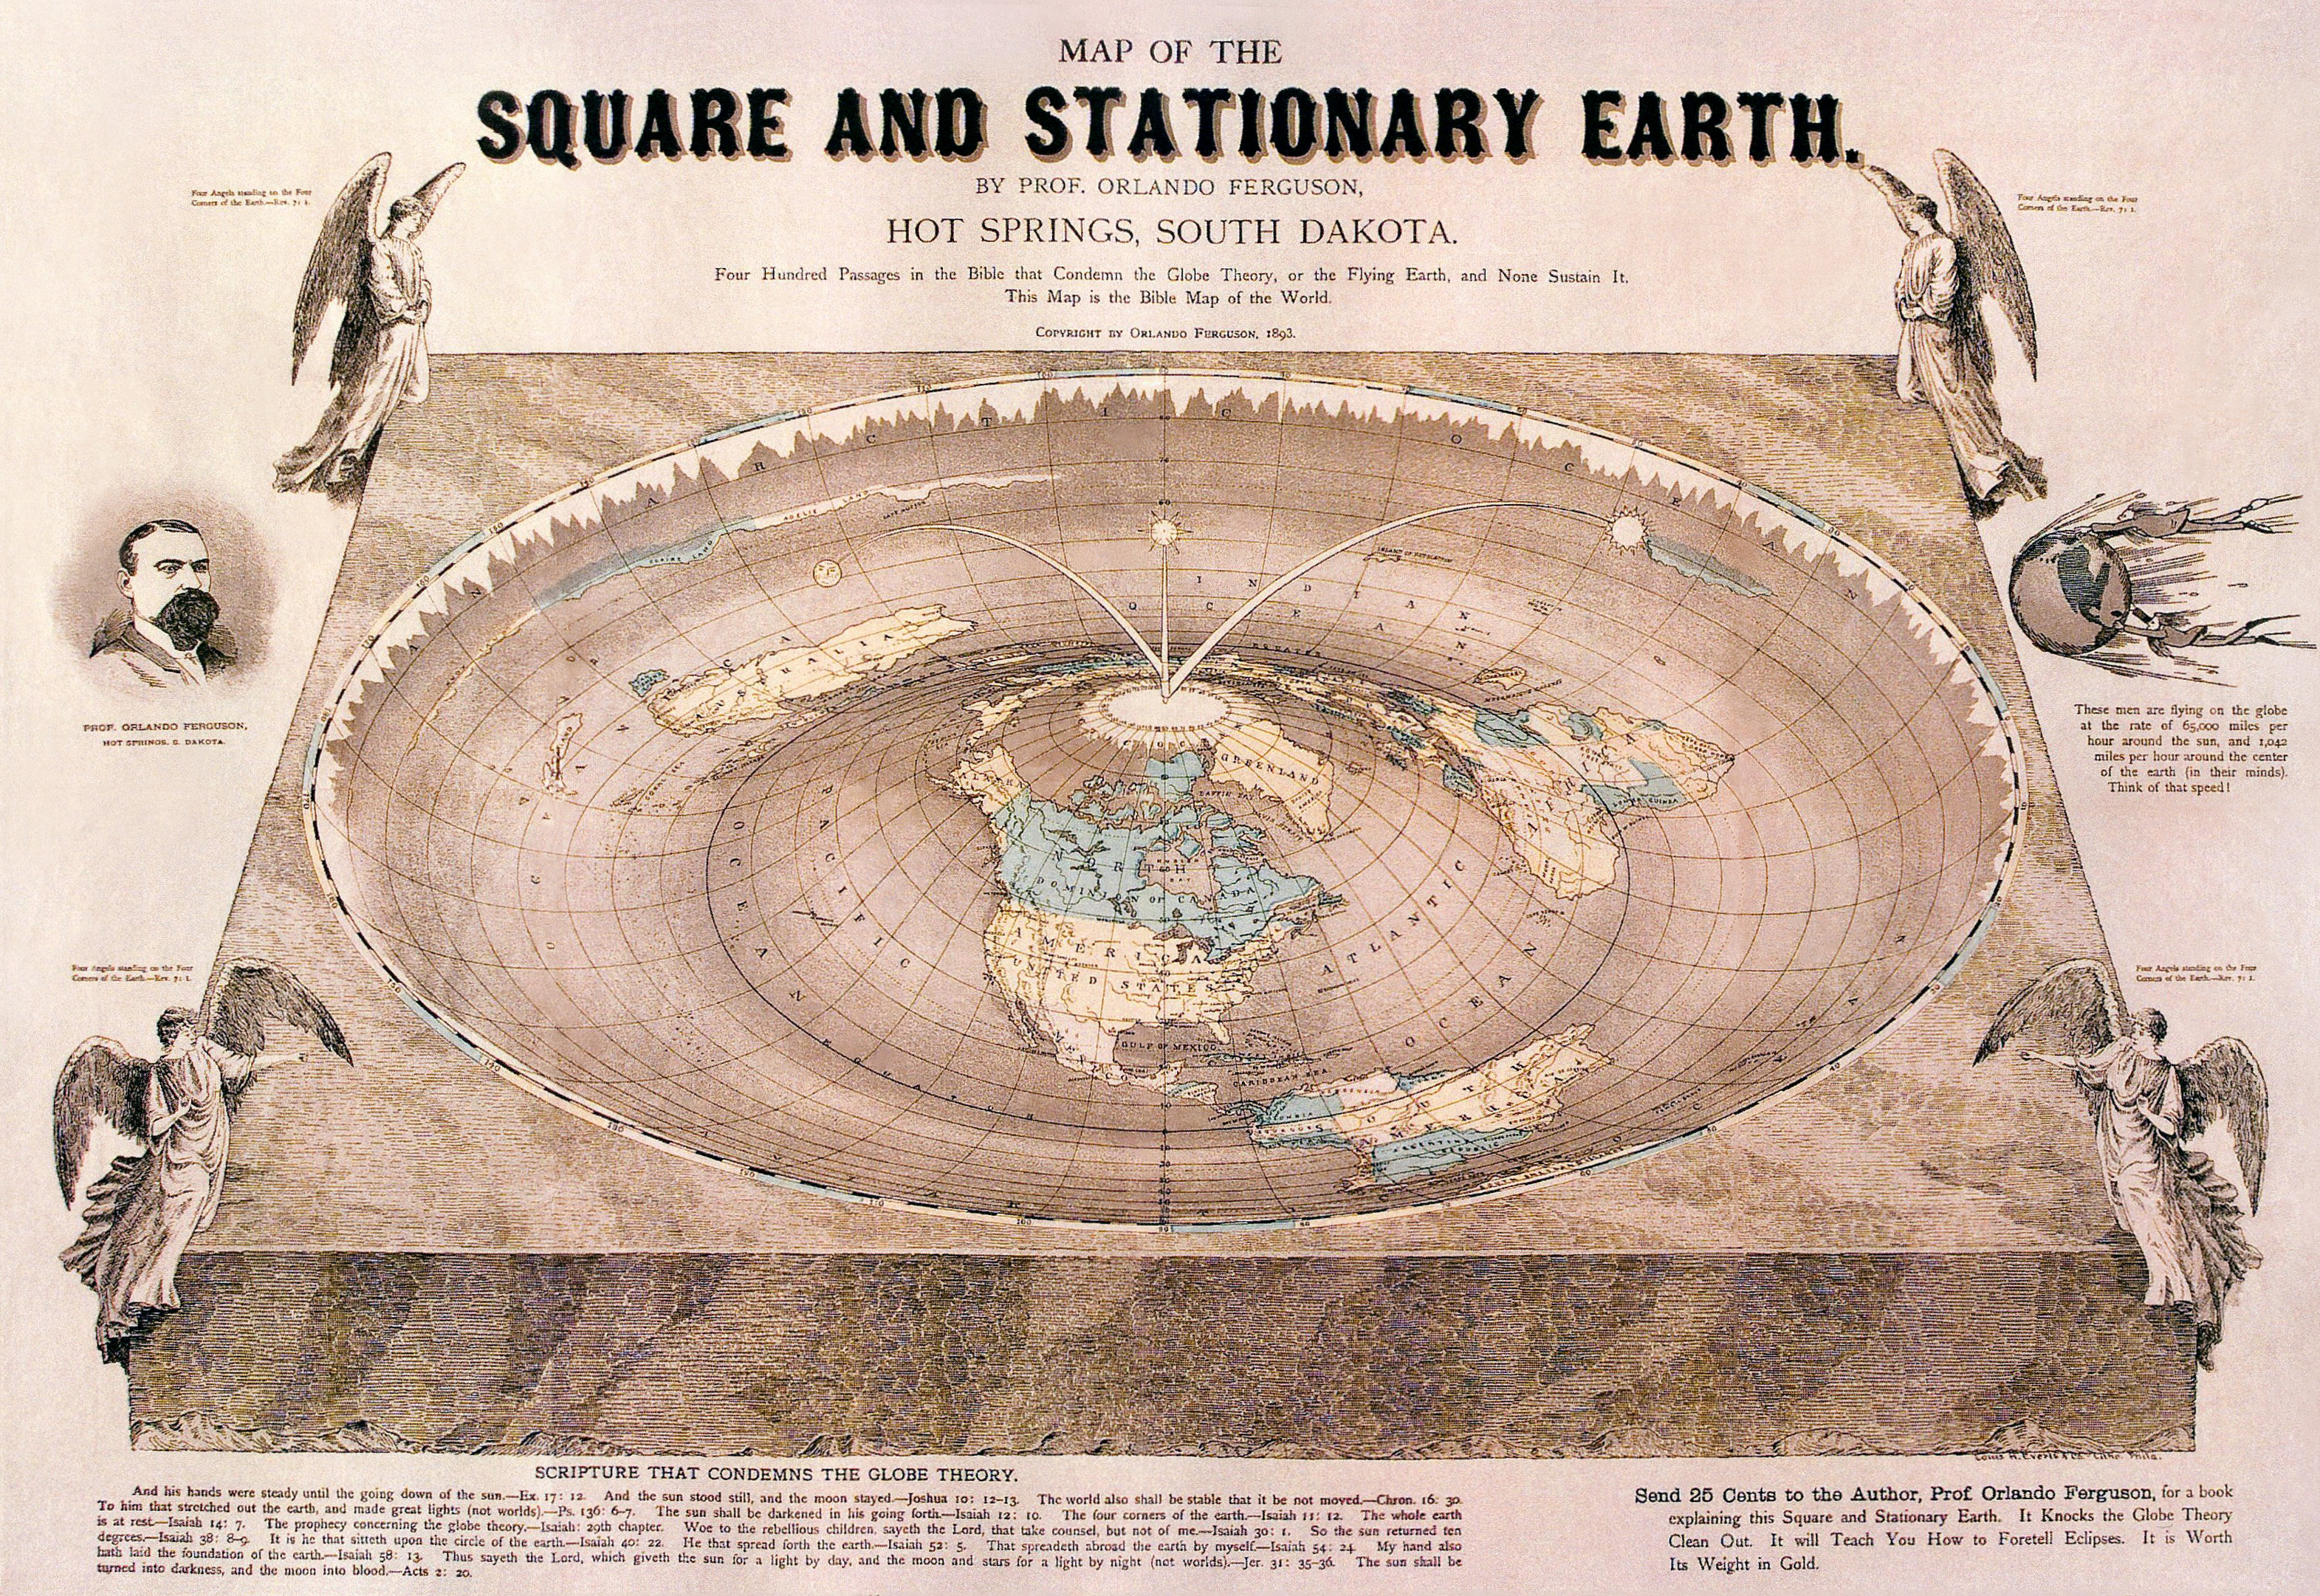 Scientific article suggests that the Earth is in fact flat  The